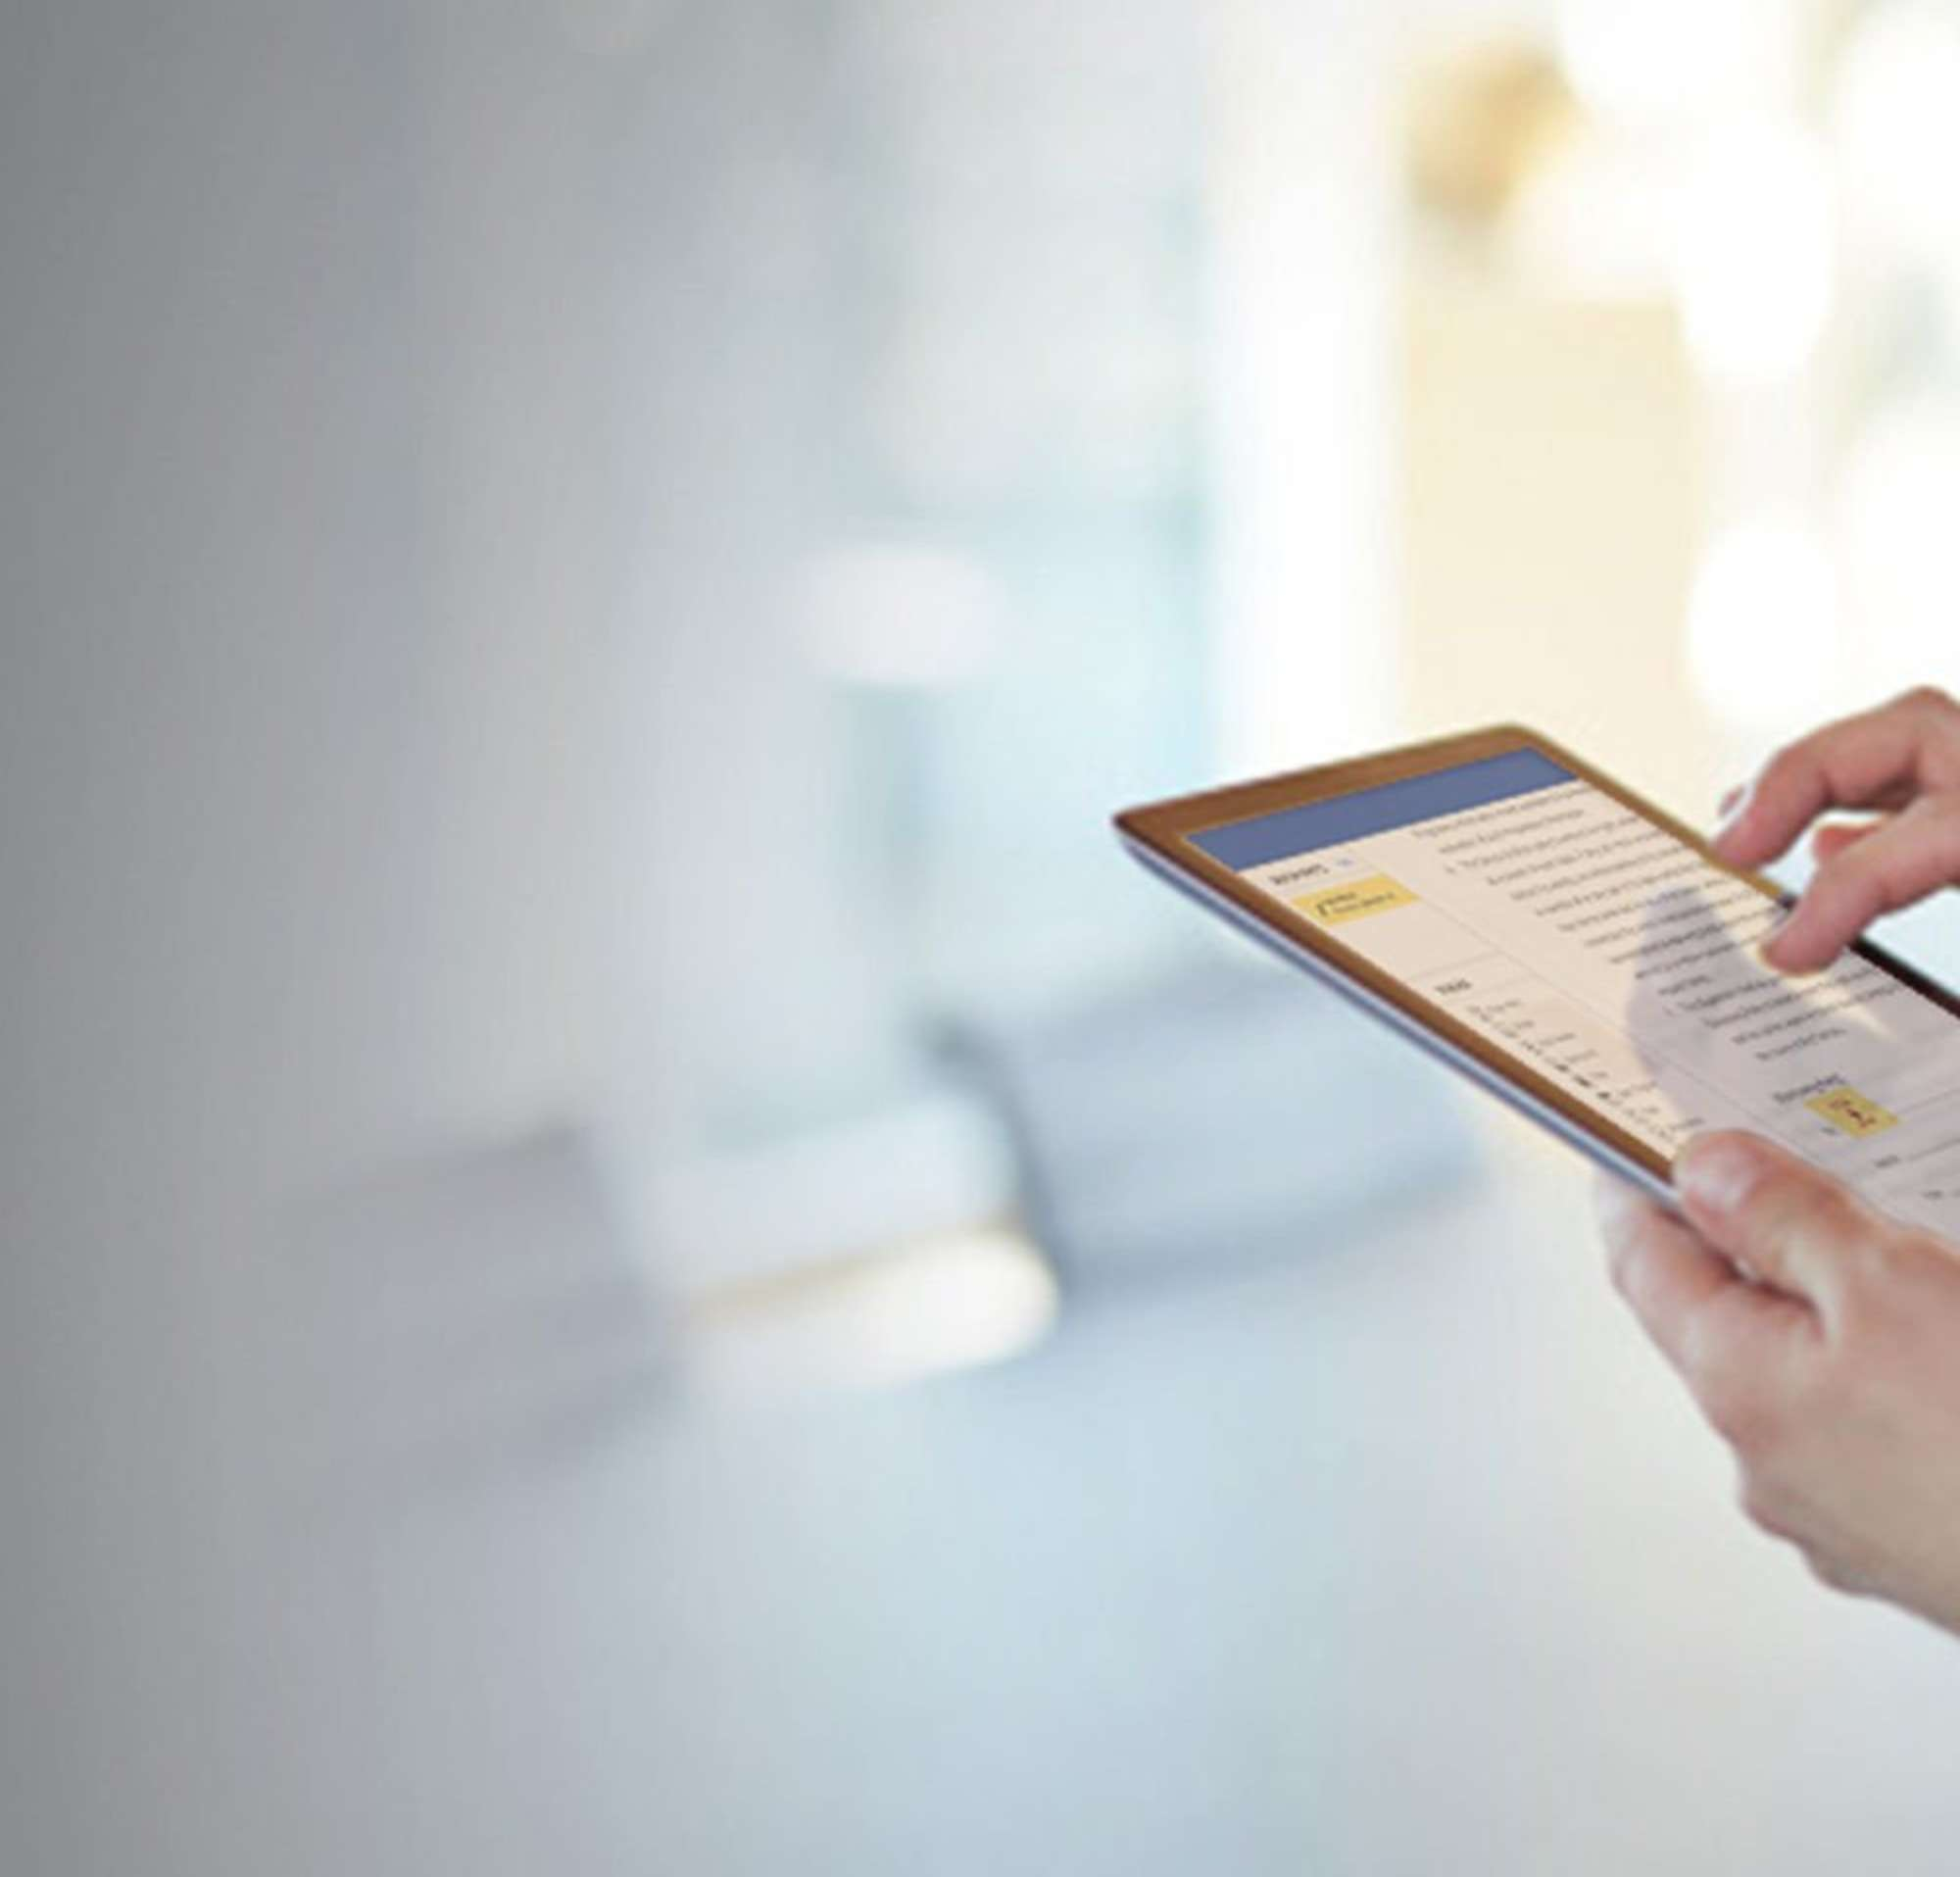 Electronically sign documents from an iPhone or iPad